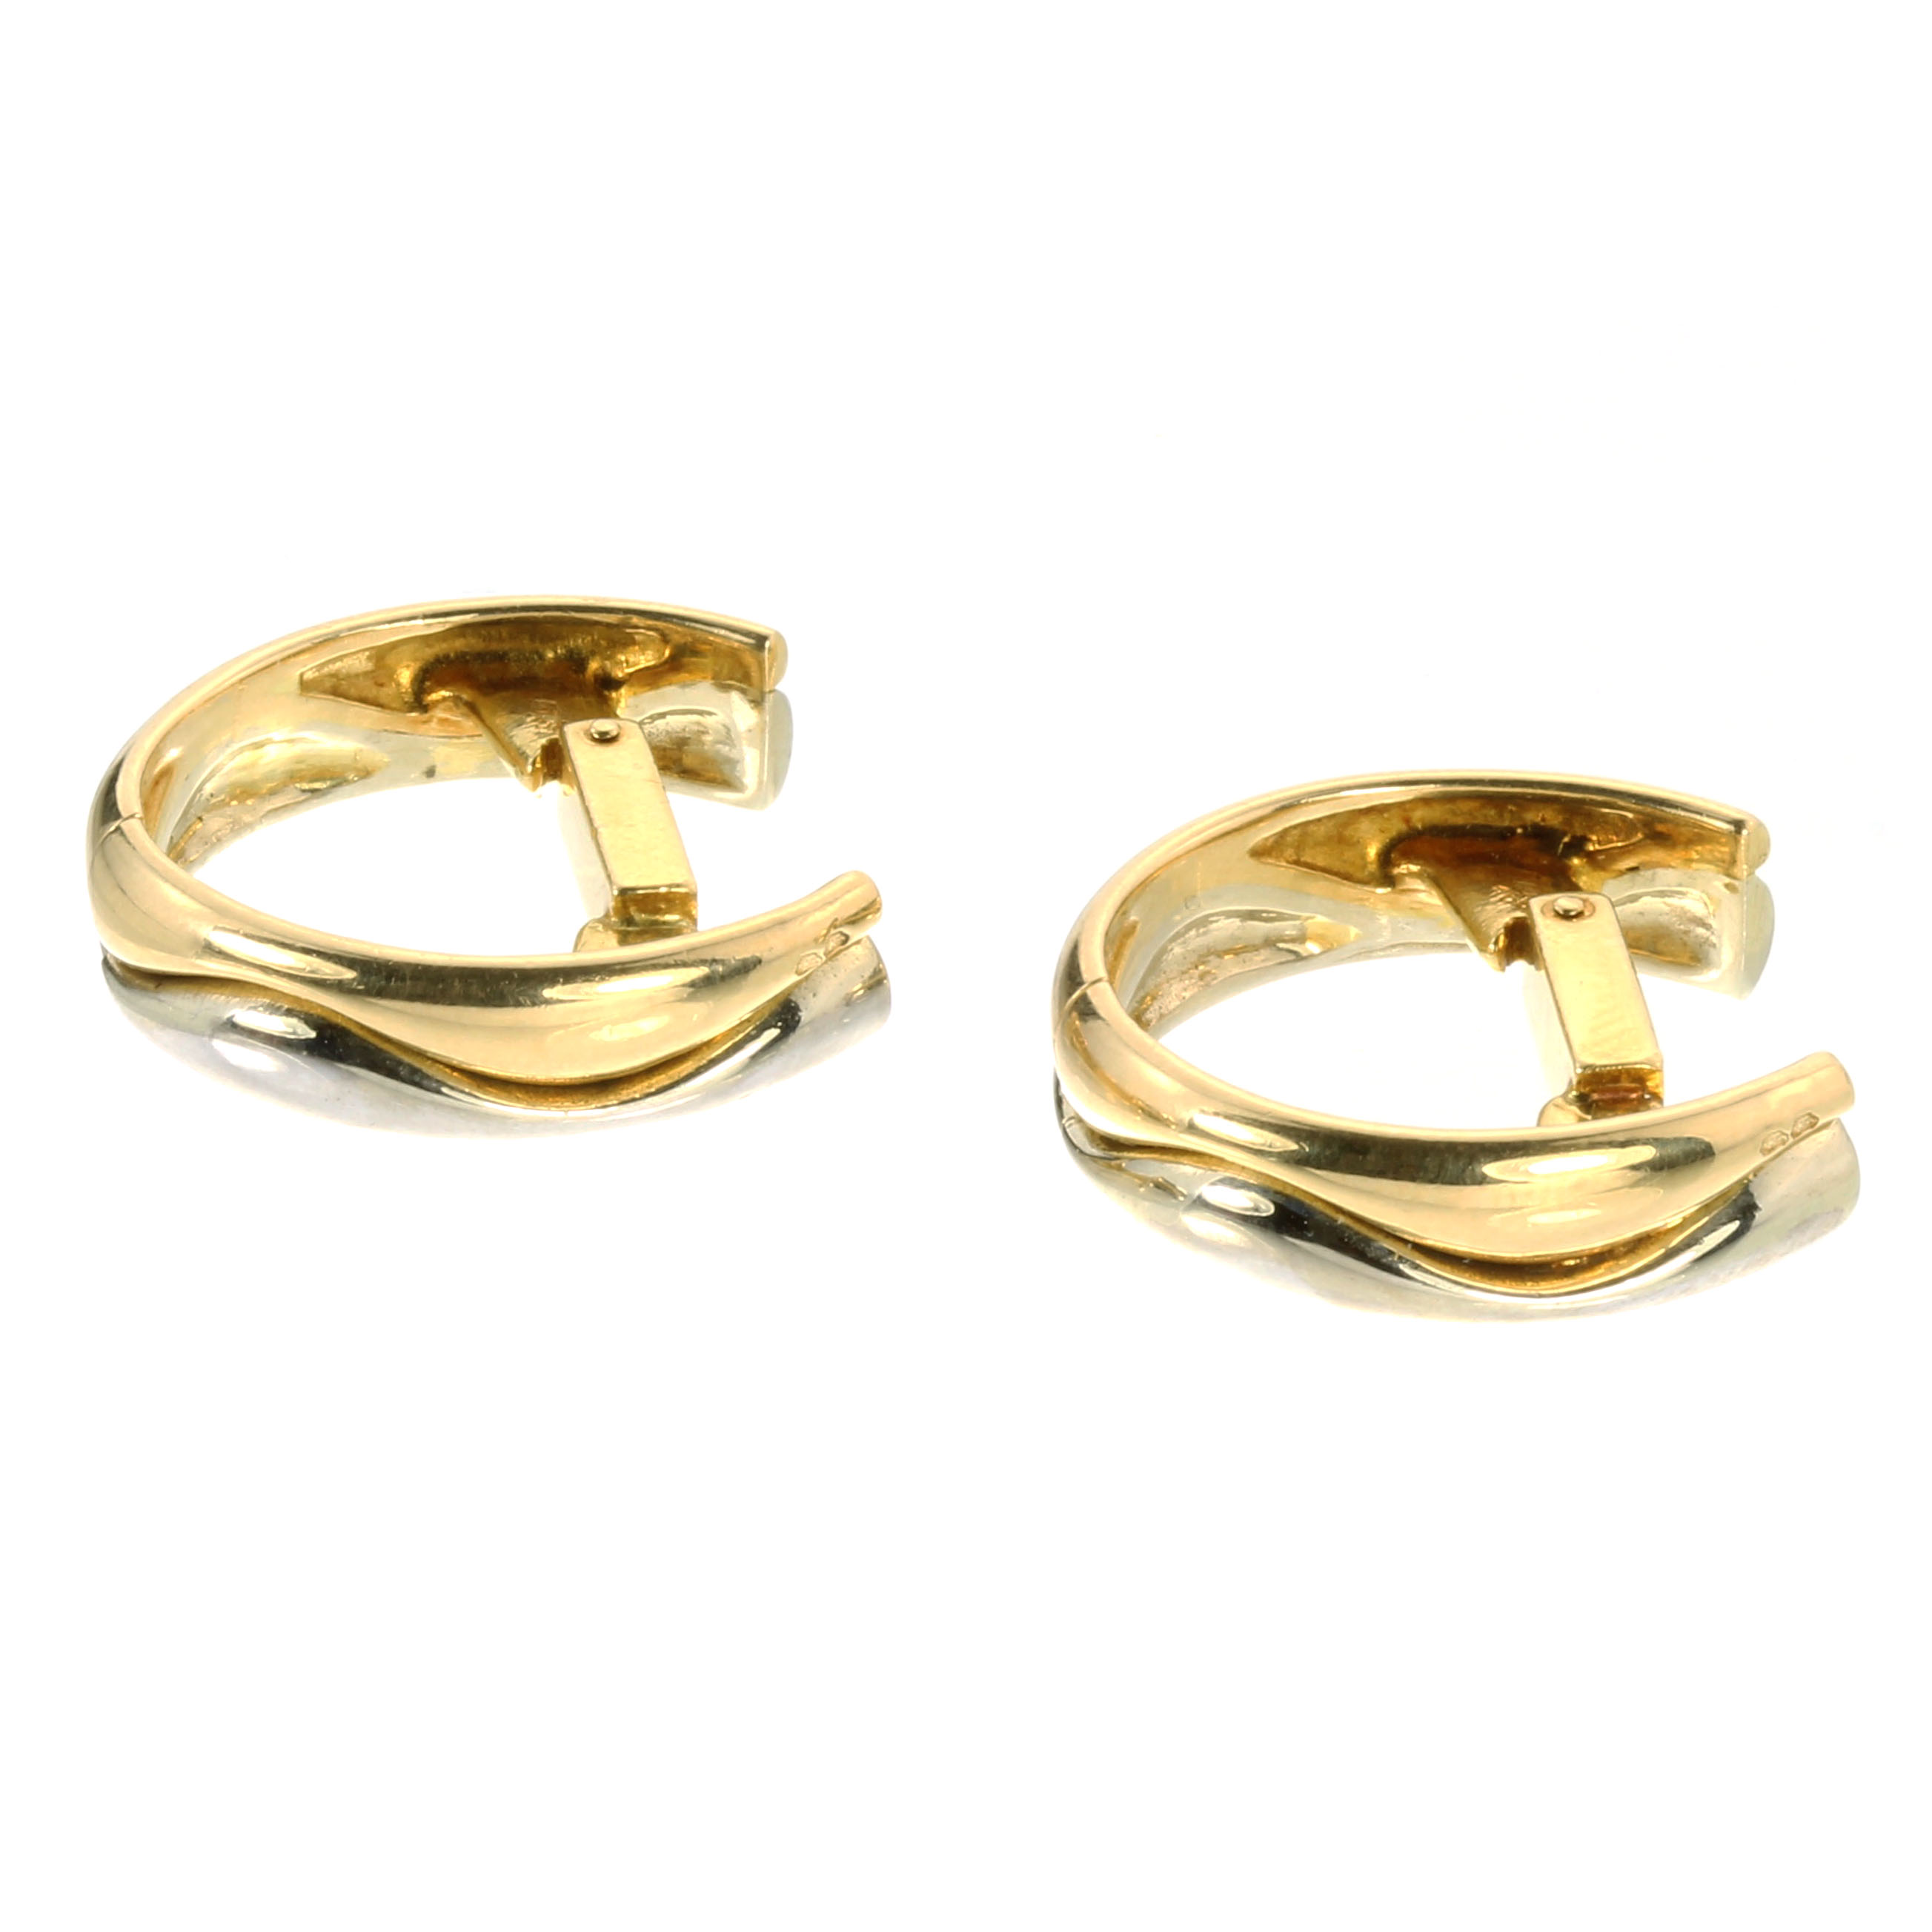 A VINTAGE PAIR OF CUFFLINKS, CARTIER in 18ct yellow and white gold, each incomplete hoop designed